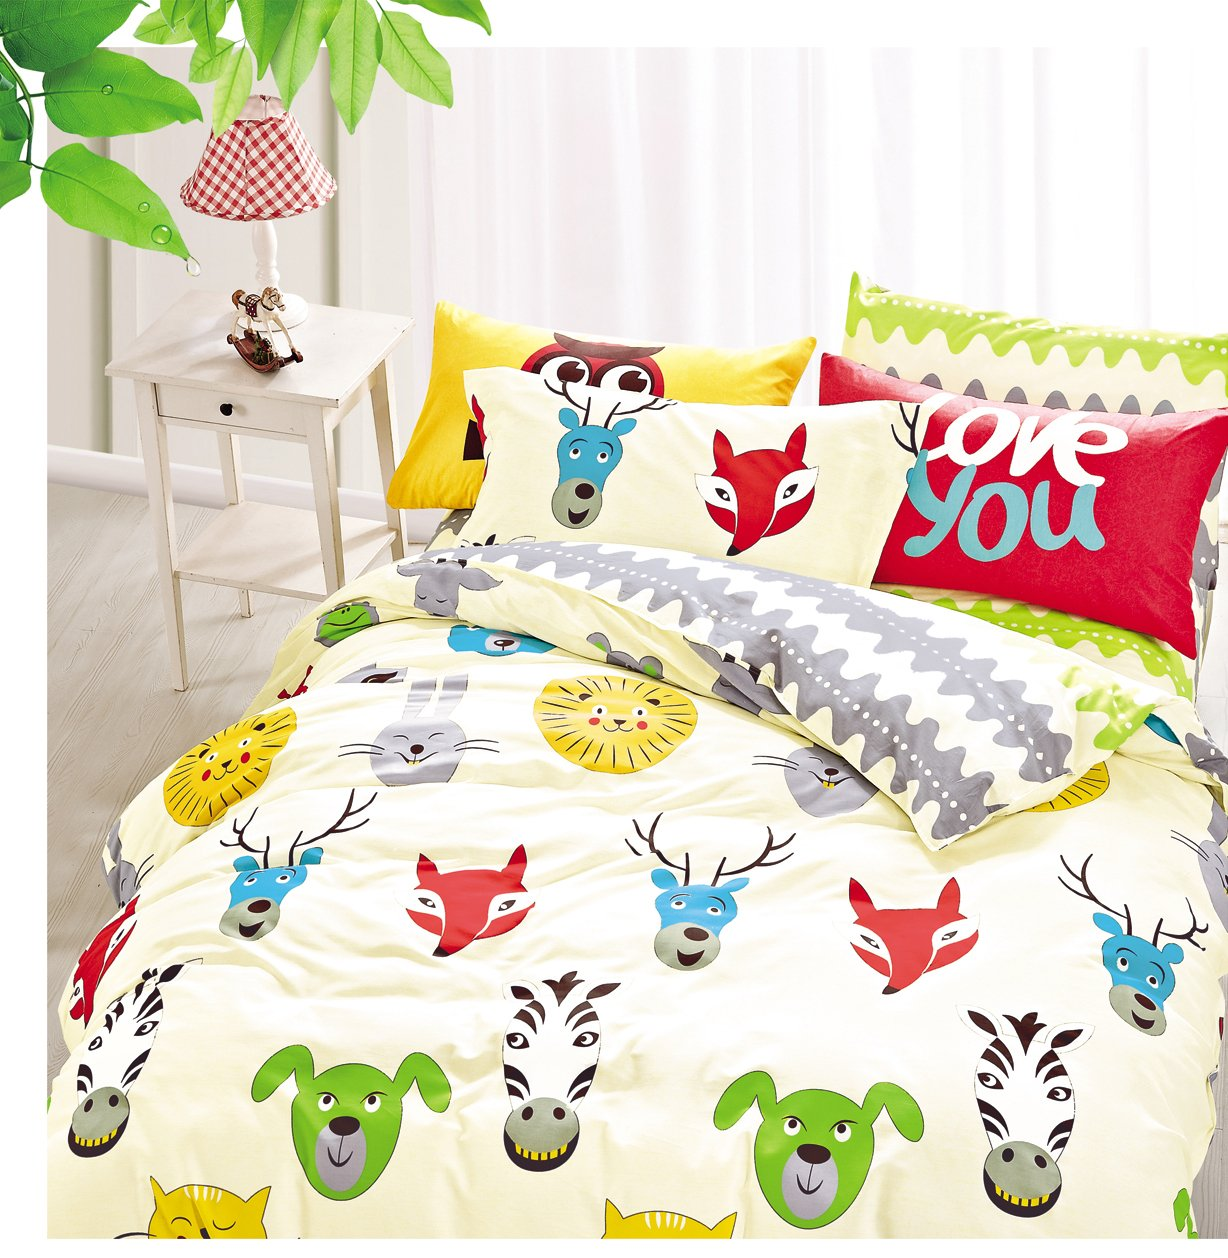 Cliab Animal Print Bedding King Size Lion Fox Zebra Dog Rabbit Cat Duvet Cover Set